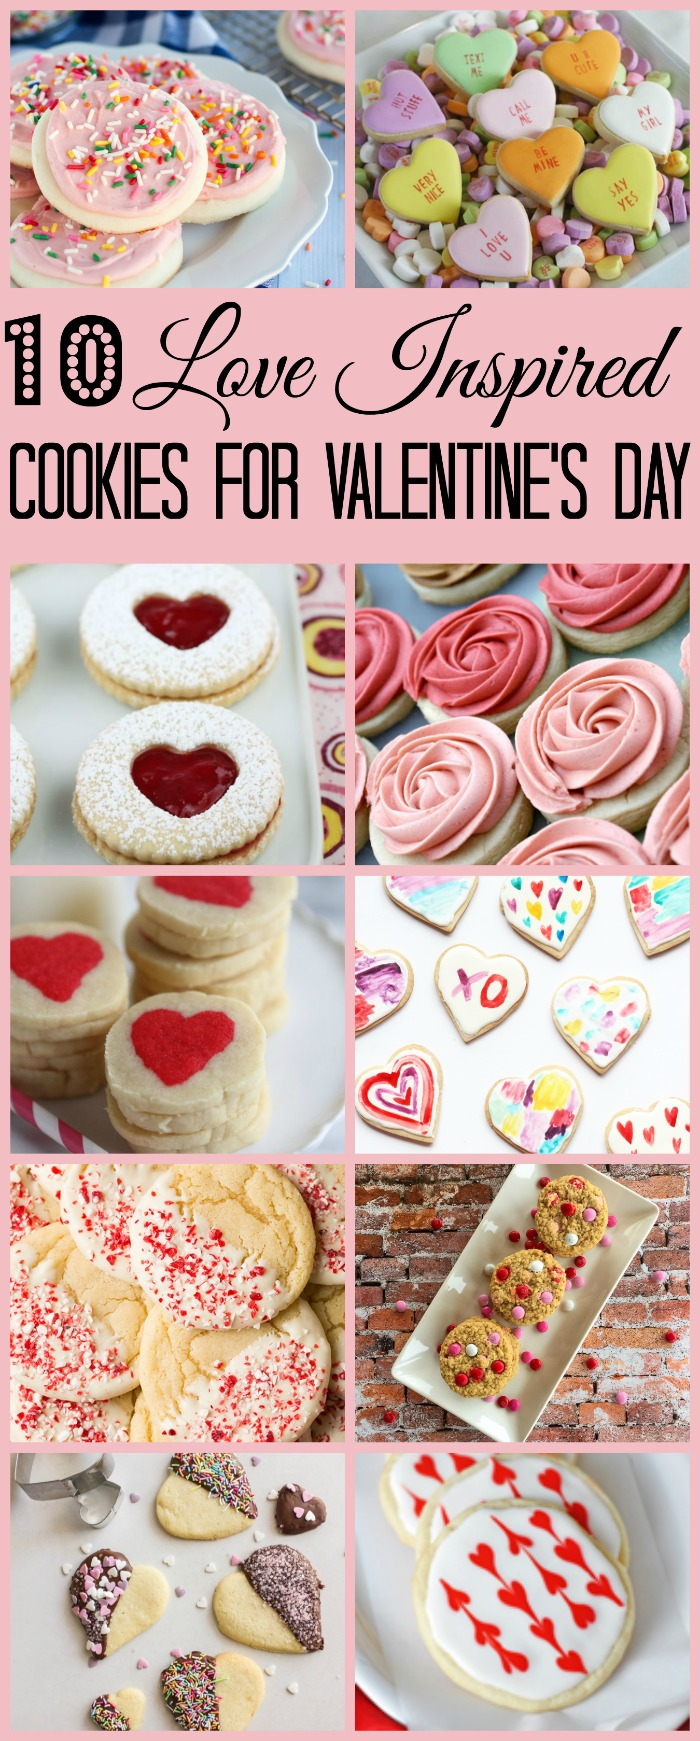 10 Love Inspired Cookies for Valentine's Day | www.homeandplate.com | Heart shaped, candy topped and frosted with holiday colors, these cookies are sure to please.